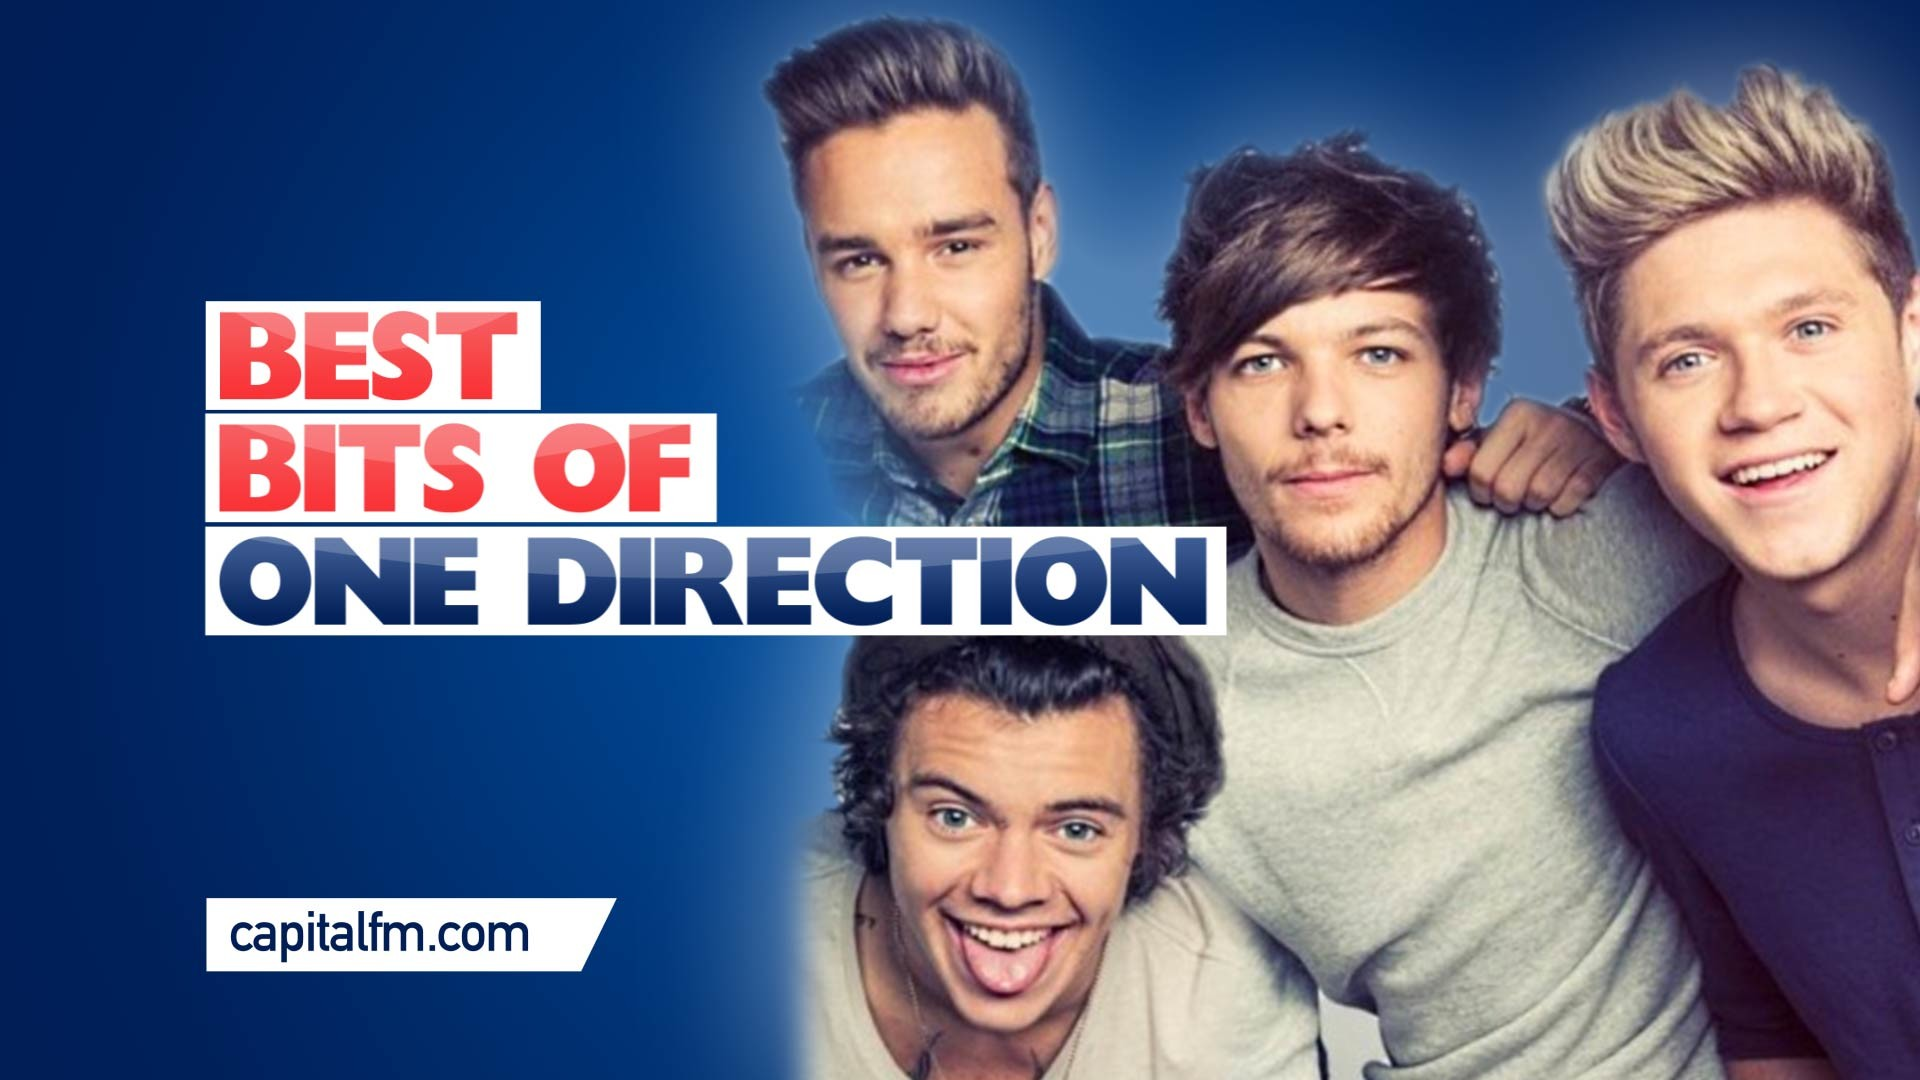 WATCH: One Direction's Best Bits